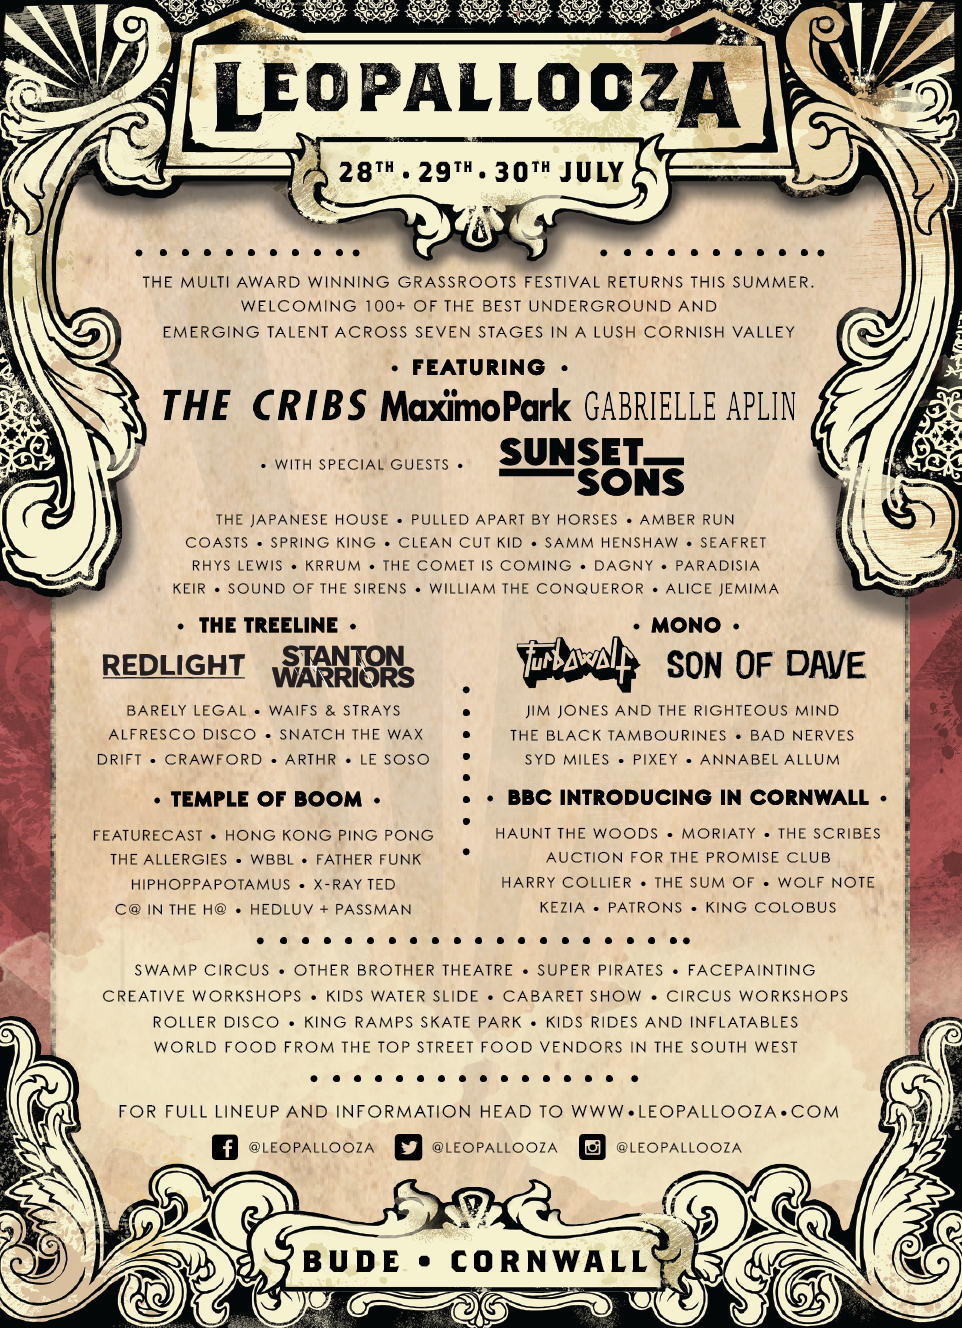 Leopallooza_XI_Poster_artwork_by_Gingerface_layout_by_Rachel_Lowson-01-01.png